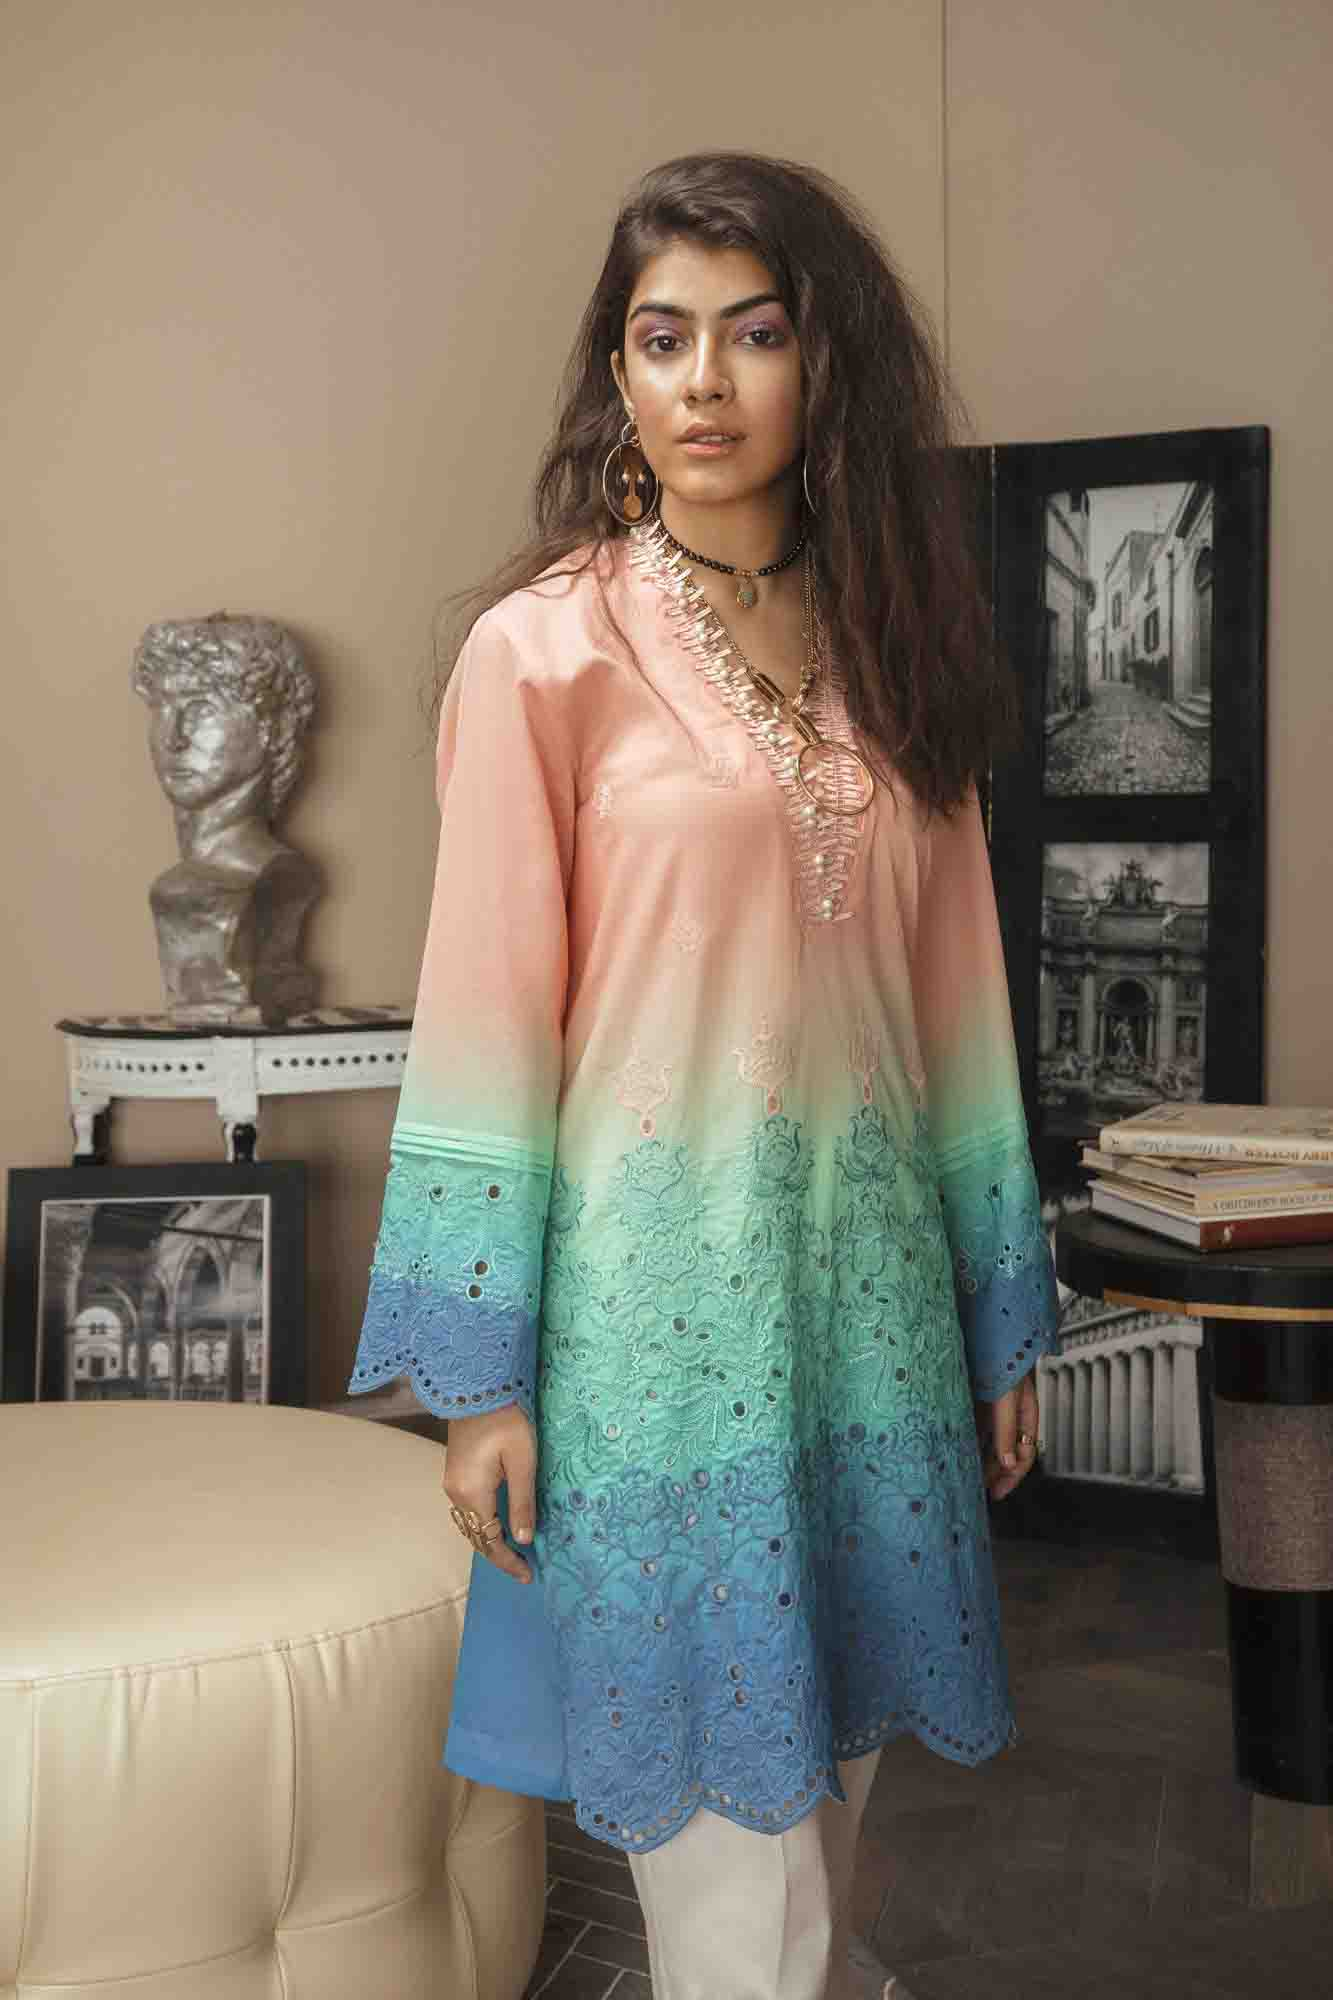 ETN peach (Pre-booking)-Embroidered 3pc lawn chicken kari dress with printed chiffon dupatta. - gracestore.pk